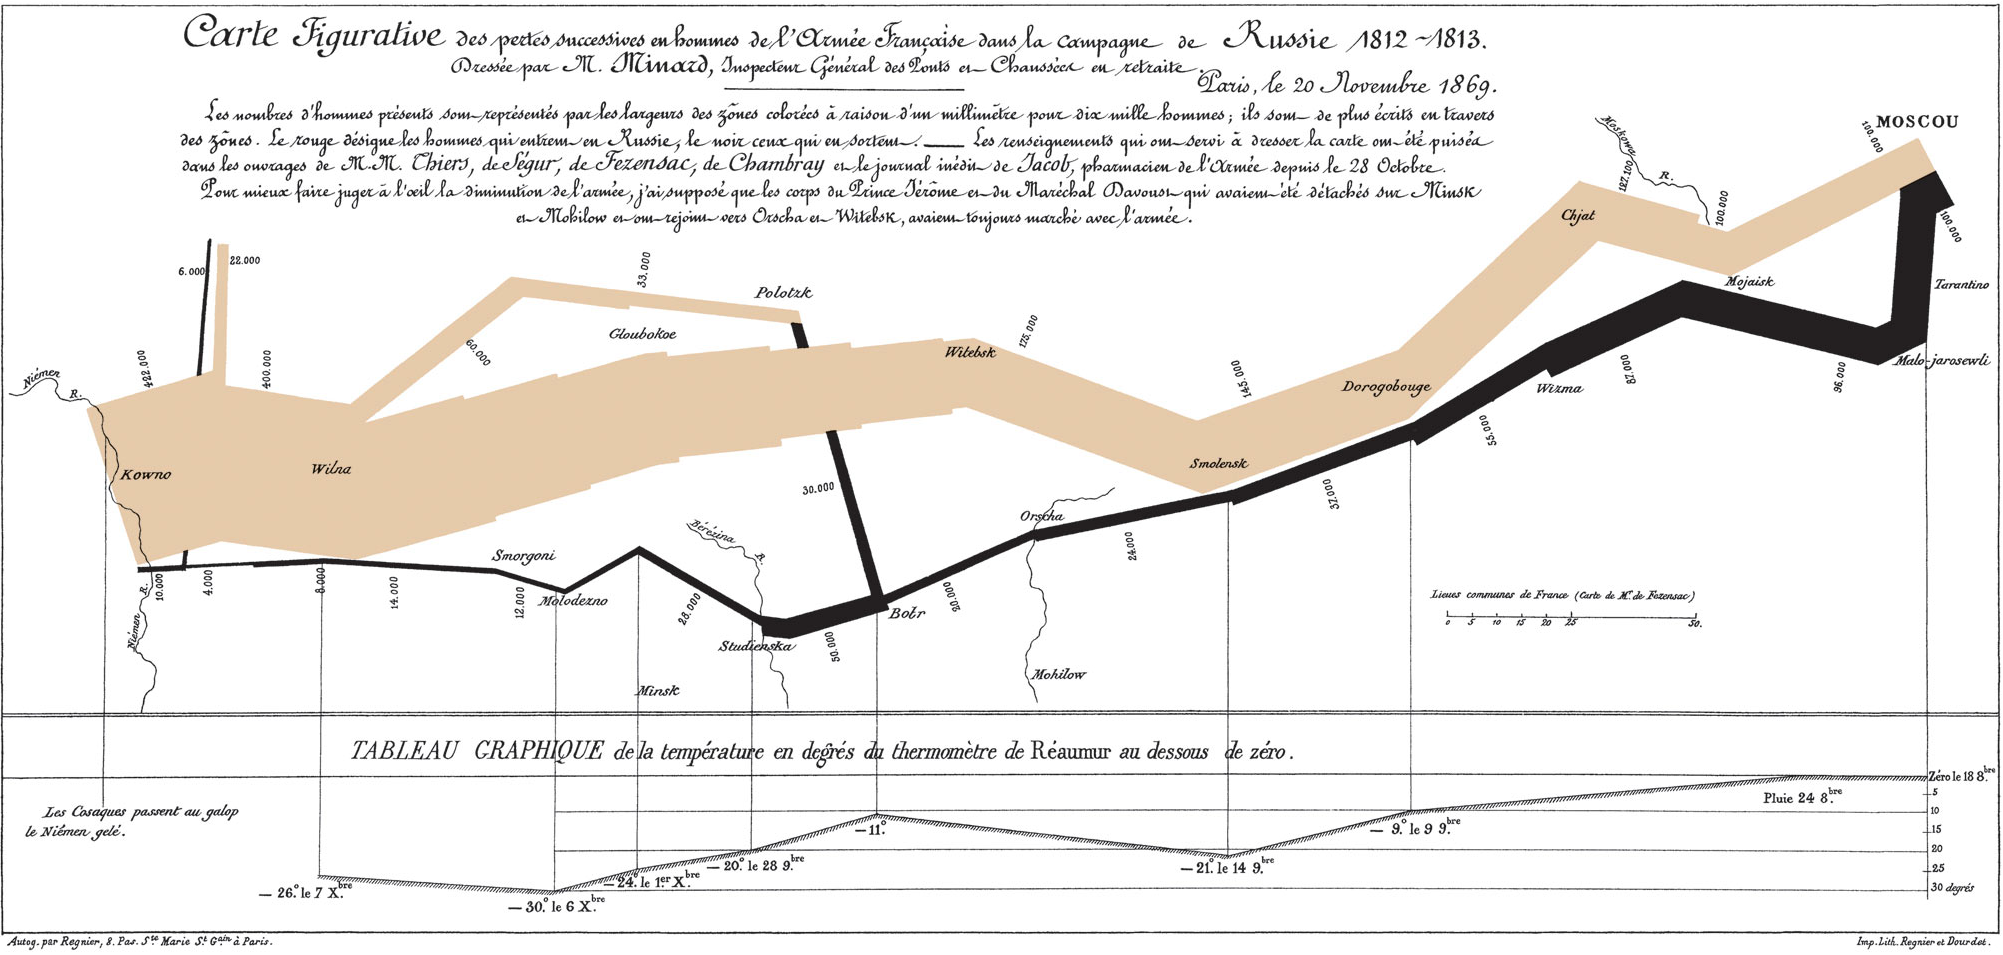 This map of Napoleon's Russian campaign shows a pink block for Napoleon's march on Russia and a black block for dwindling army's return.